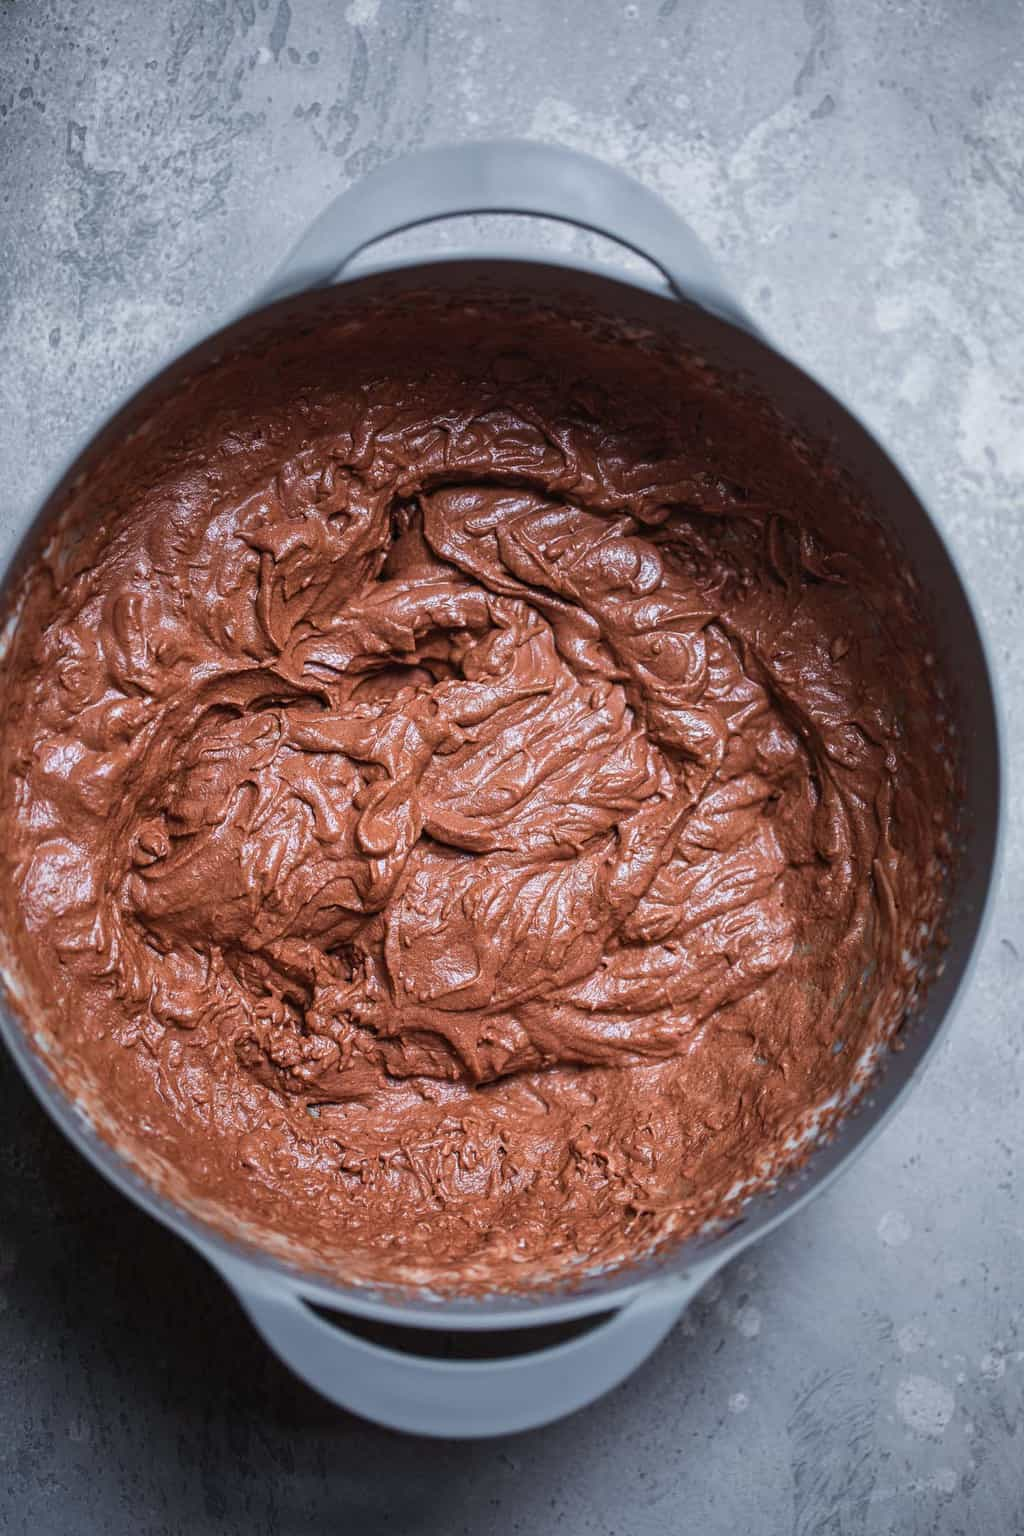 Chocolate aquafaba mousse in a mixing bowl